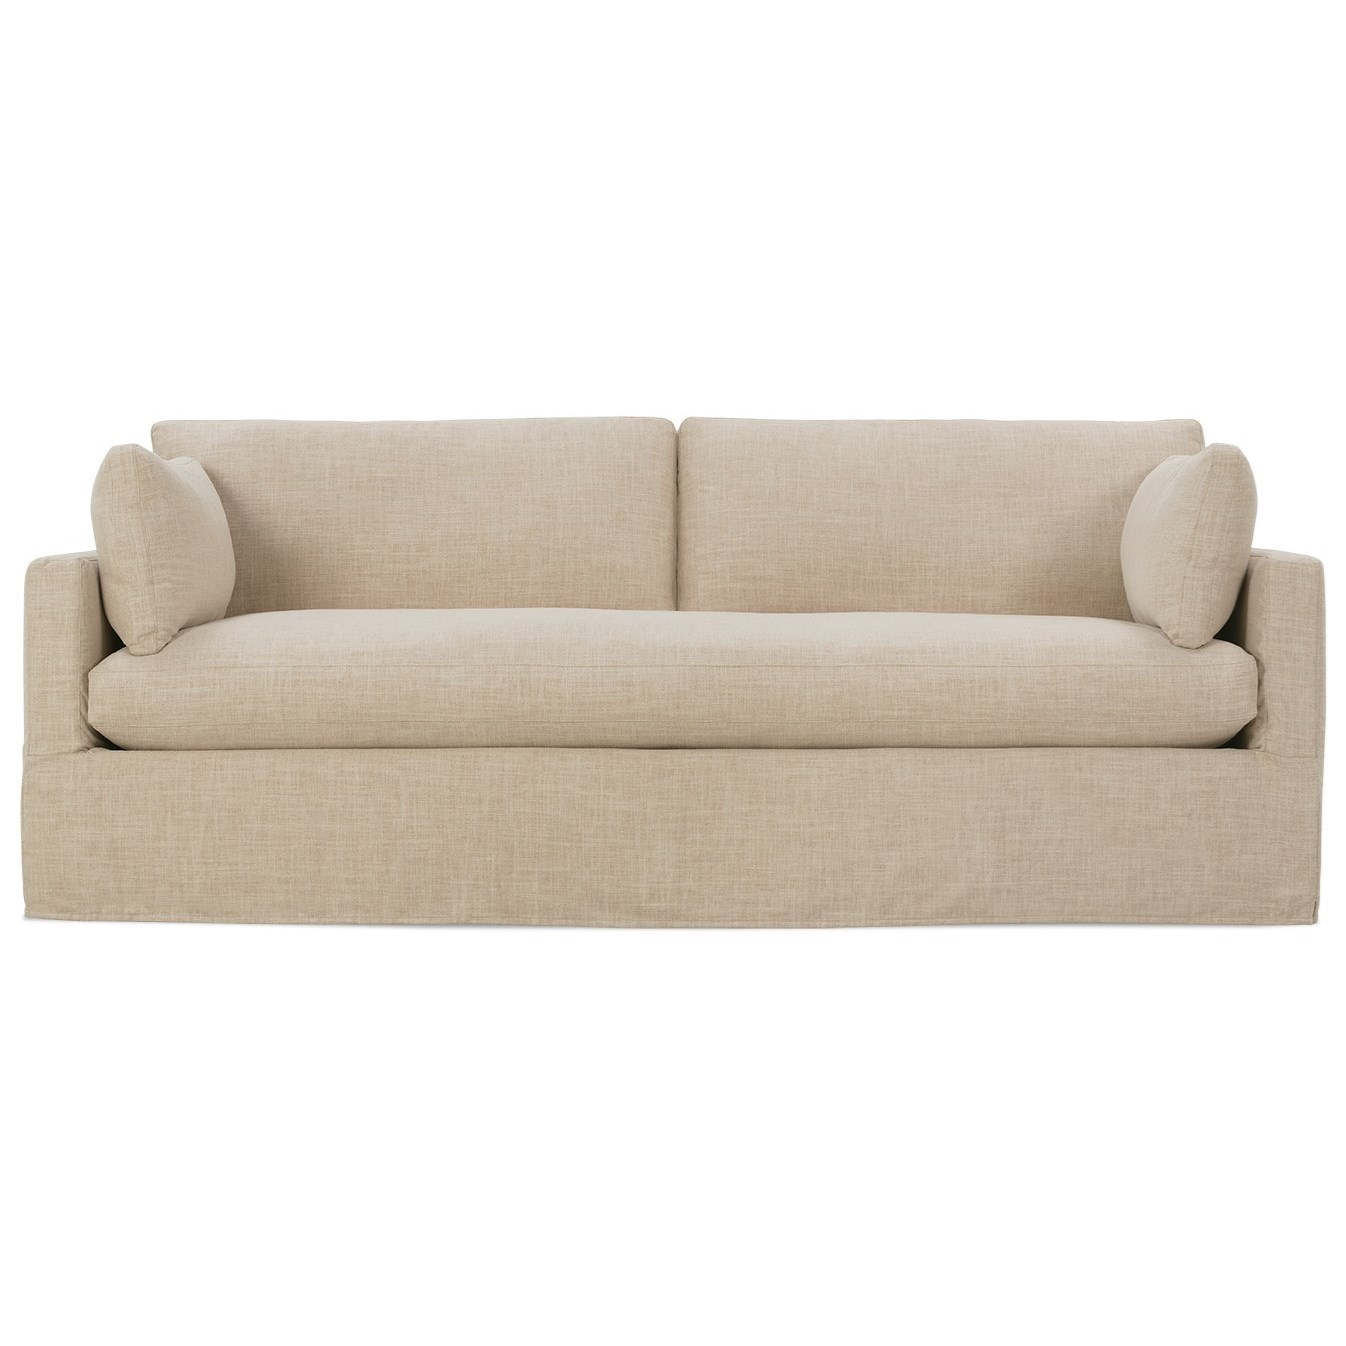 Bon RB By Rowe Sylvie Customizable Sofa With Bench Seat And Slip Cover